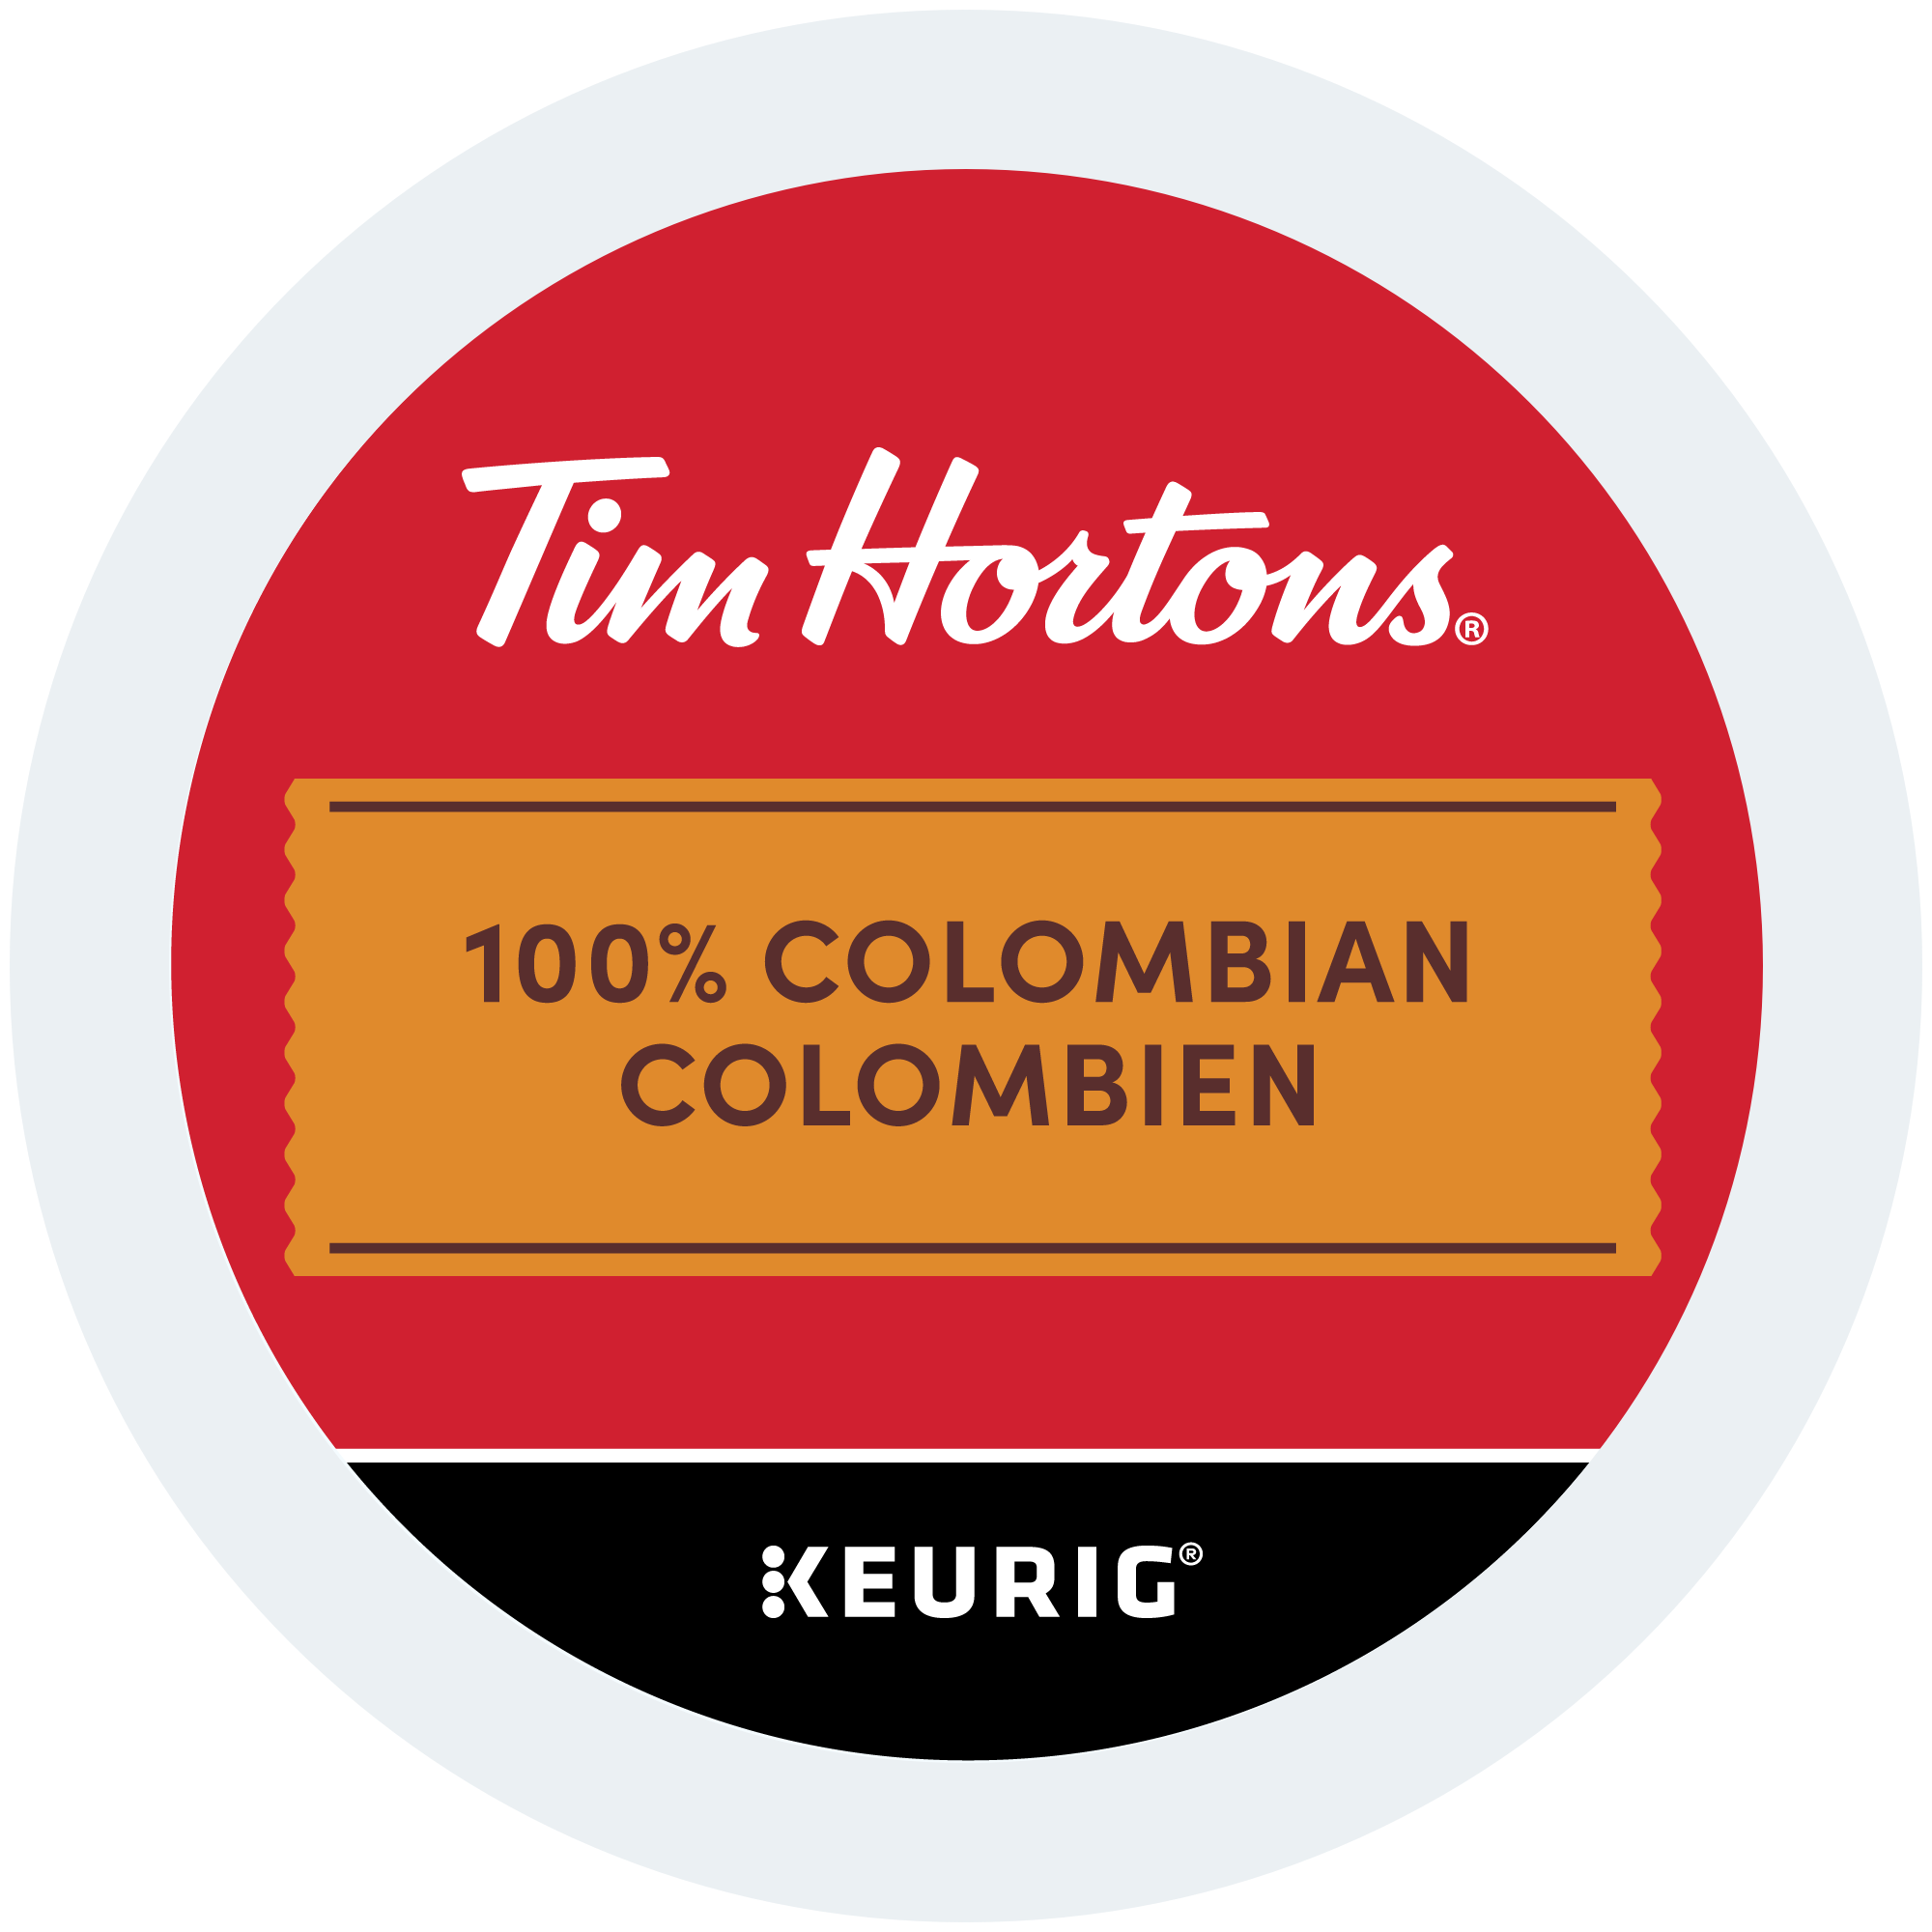 Tim Hortons® Colombian